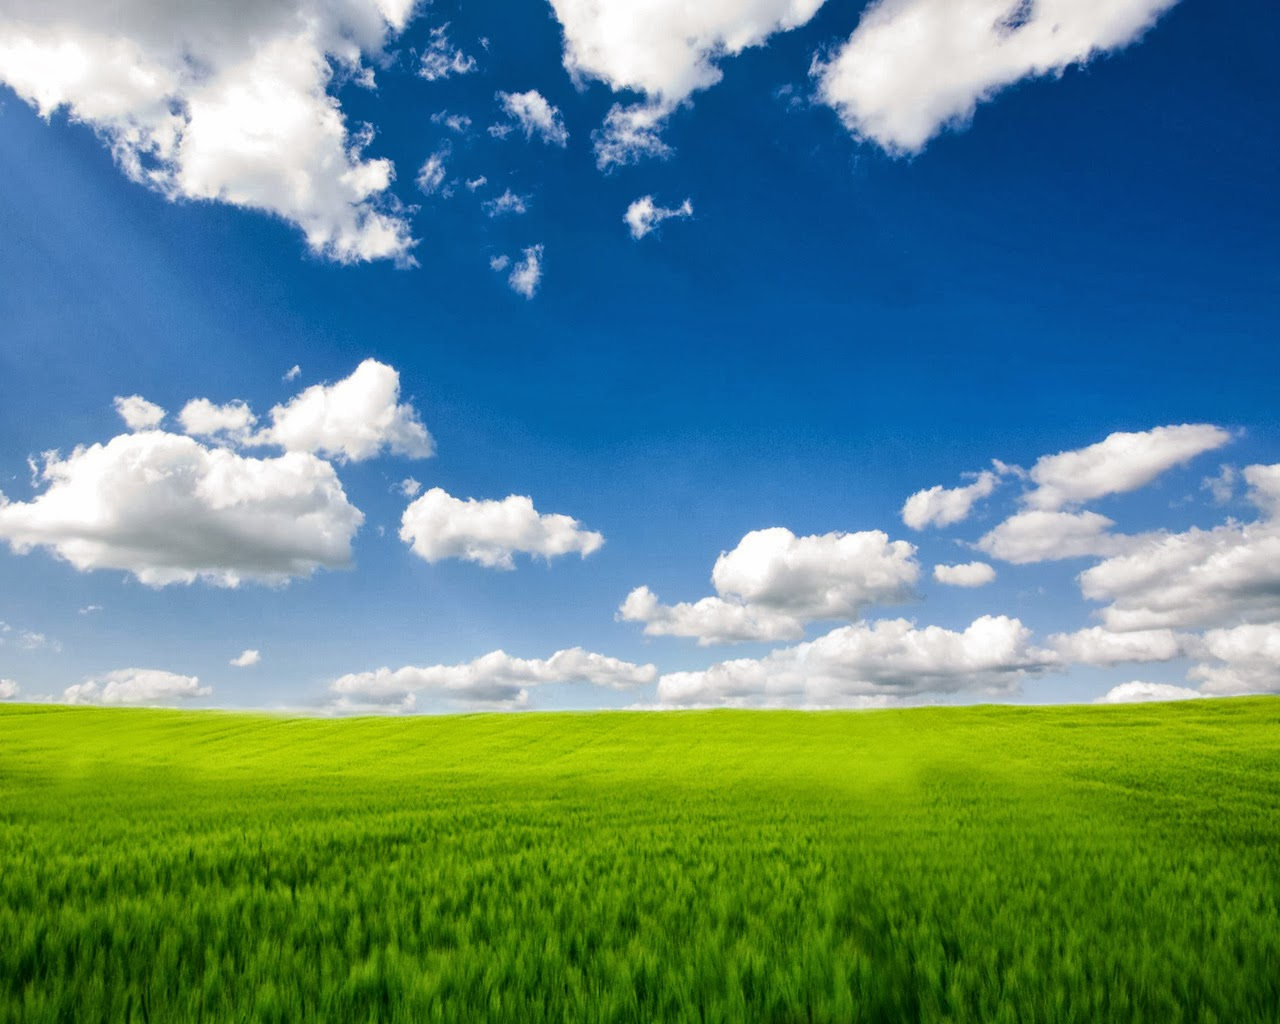 Wallpapers Zone Beautiful Blue Sky Wallpapers 1280x1024